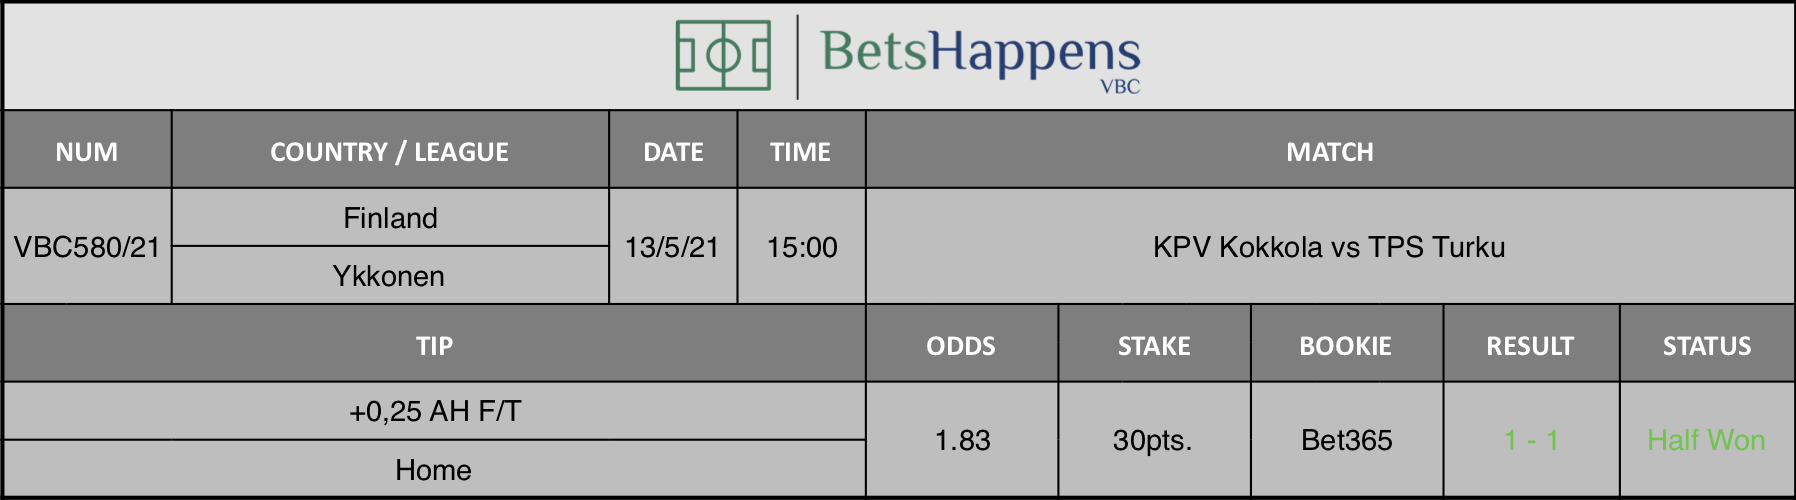 Results of our tip for the KPV Kokkola vs TPS Turku match where +0,25 AH F/T  Home is recommended.